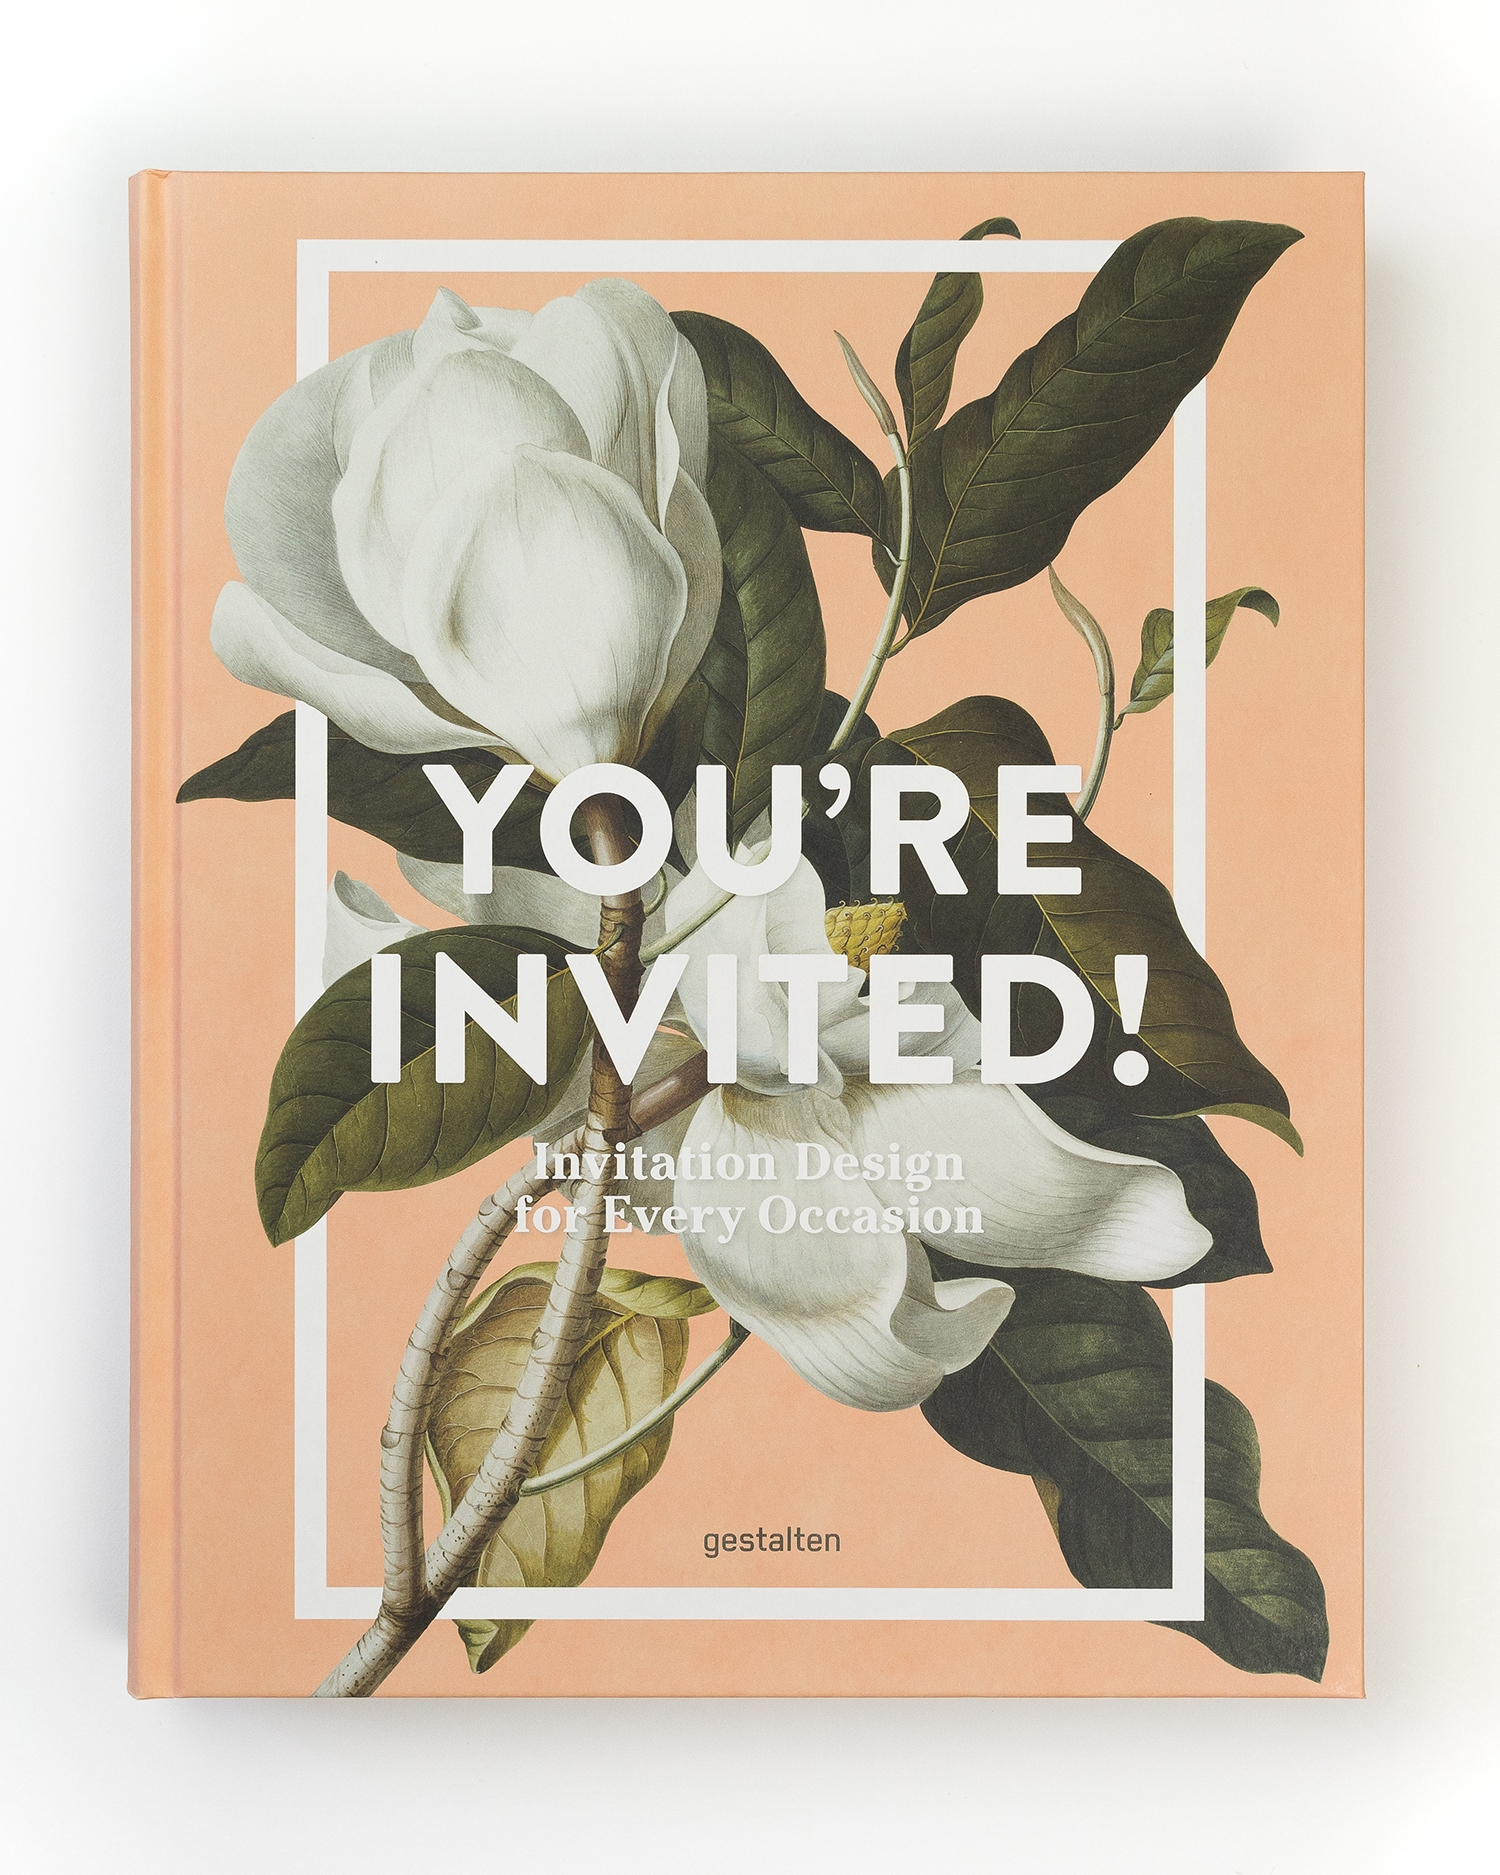 These beautiful invitation designs reassure us the artform isnt